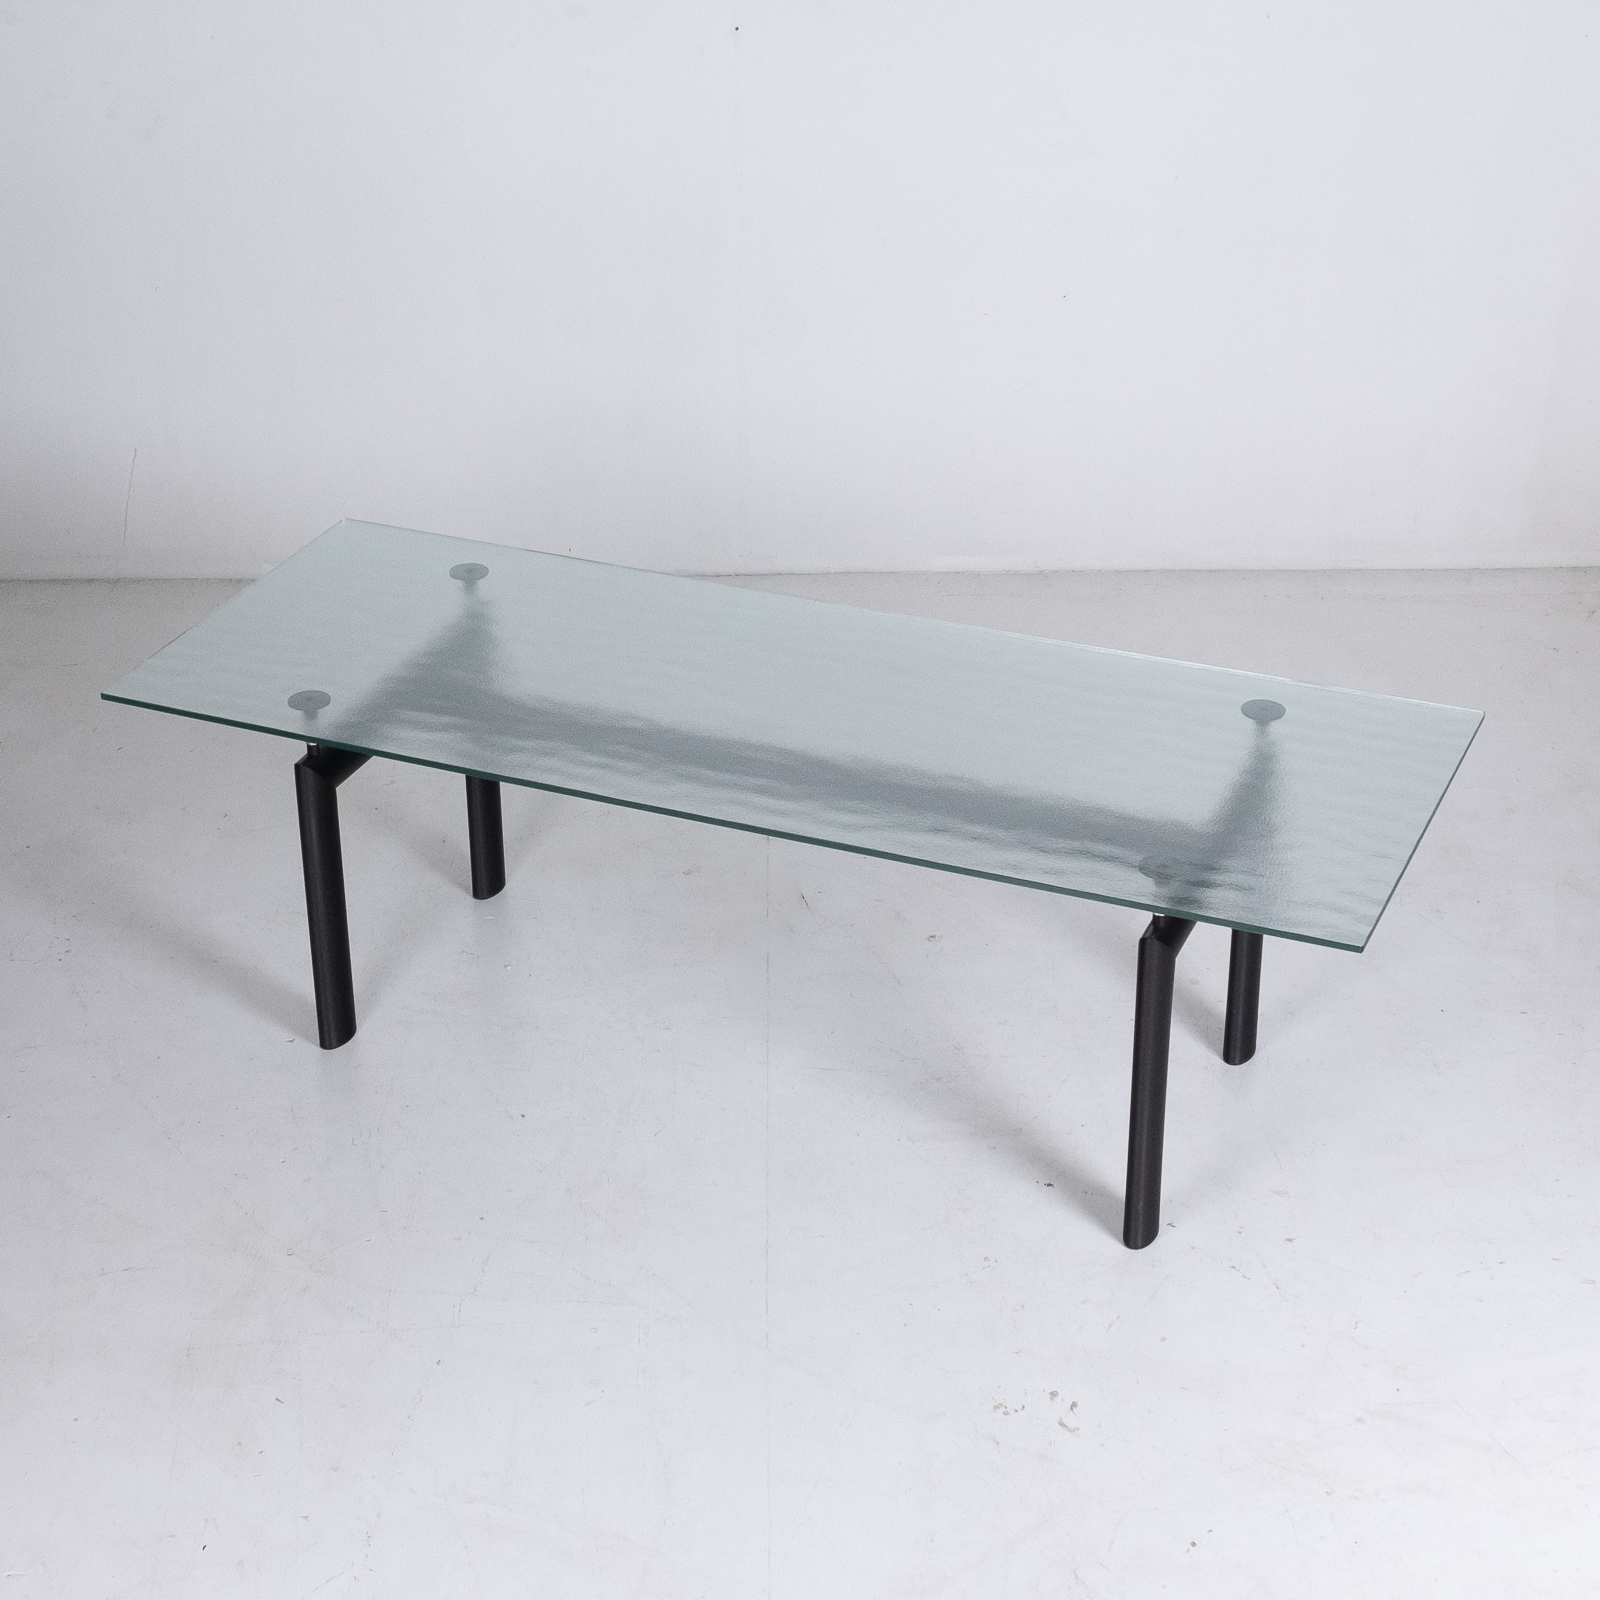 Model Lc6 Dining Table By Le Corbusier For Cassina, 1928 00012